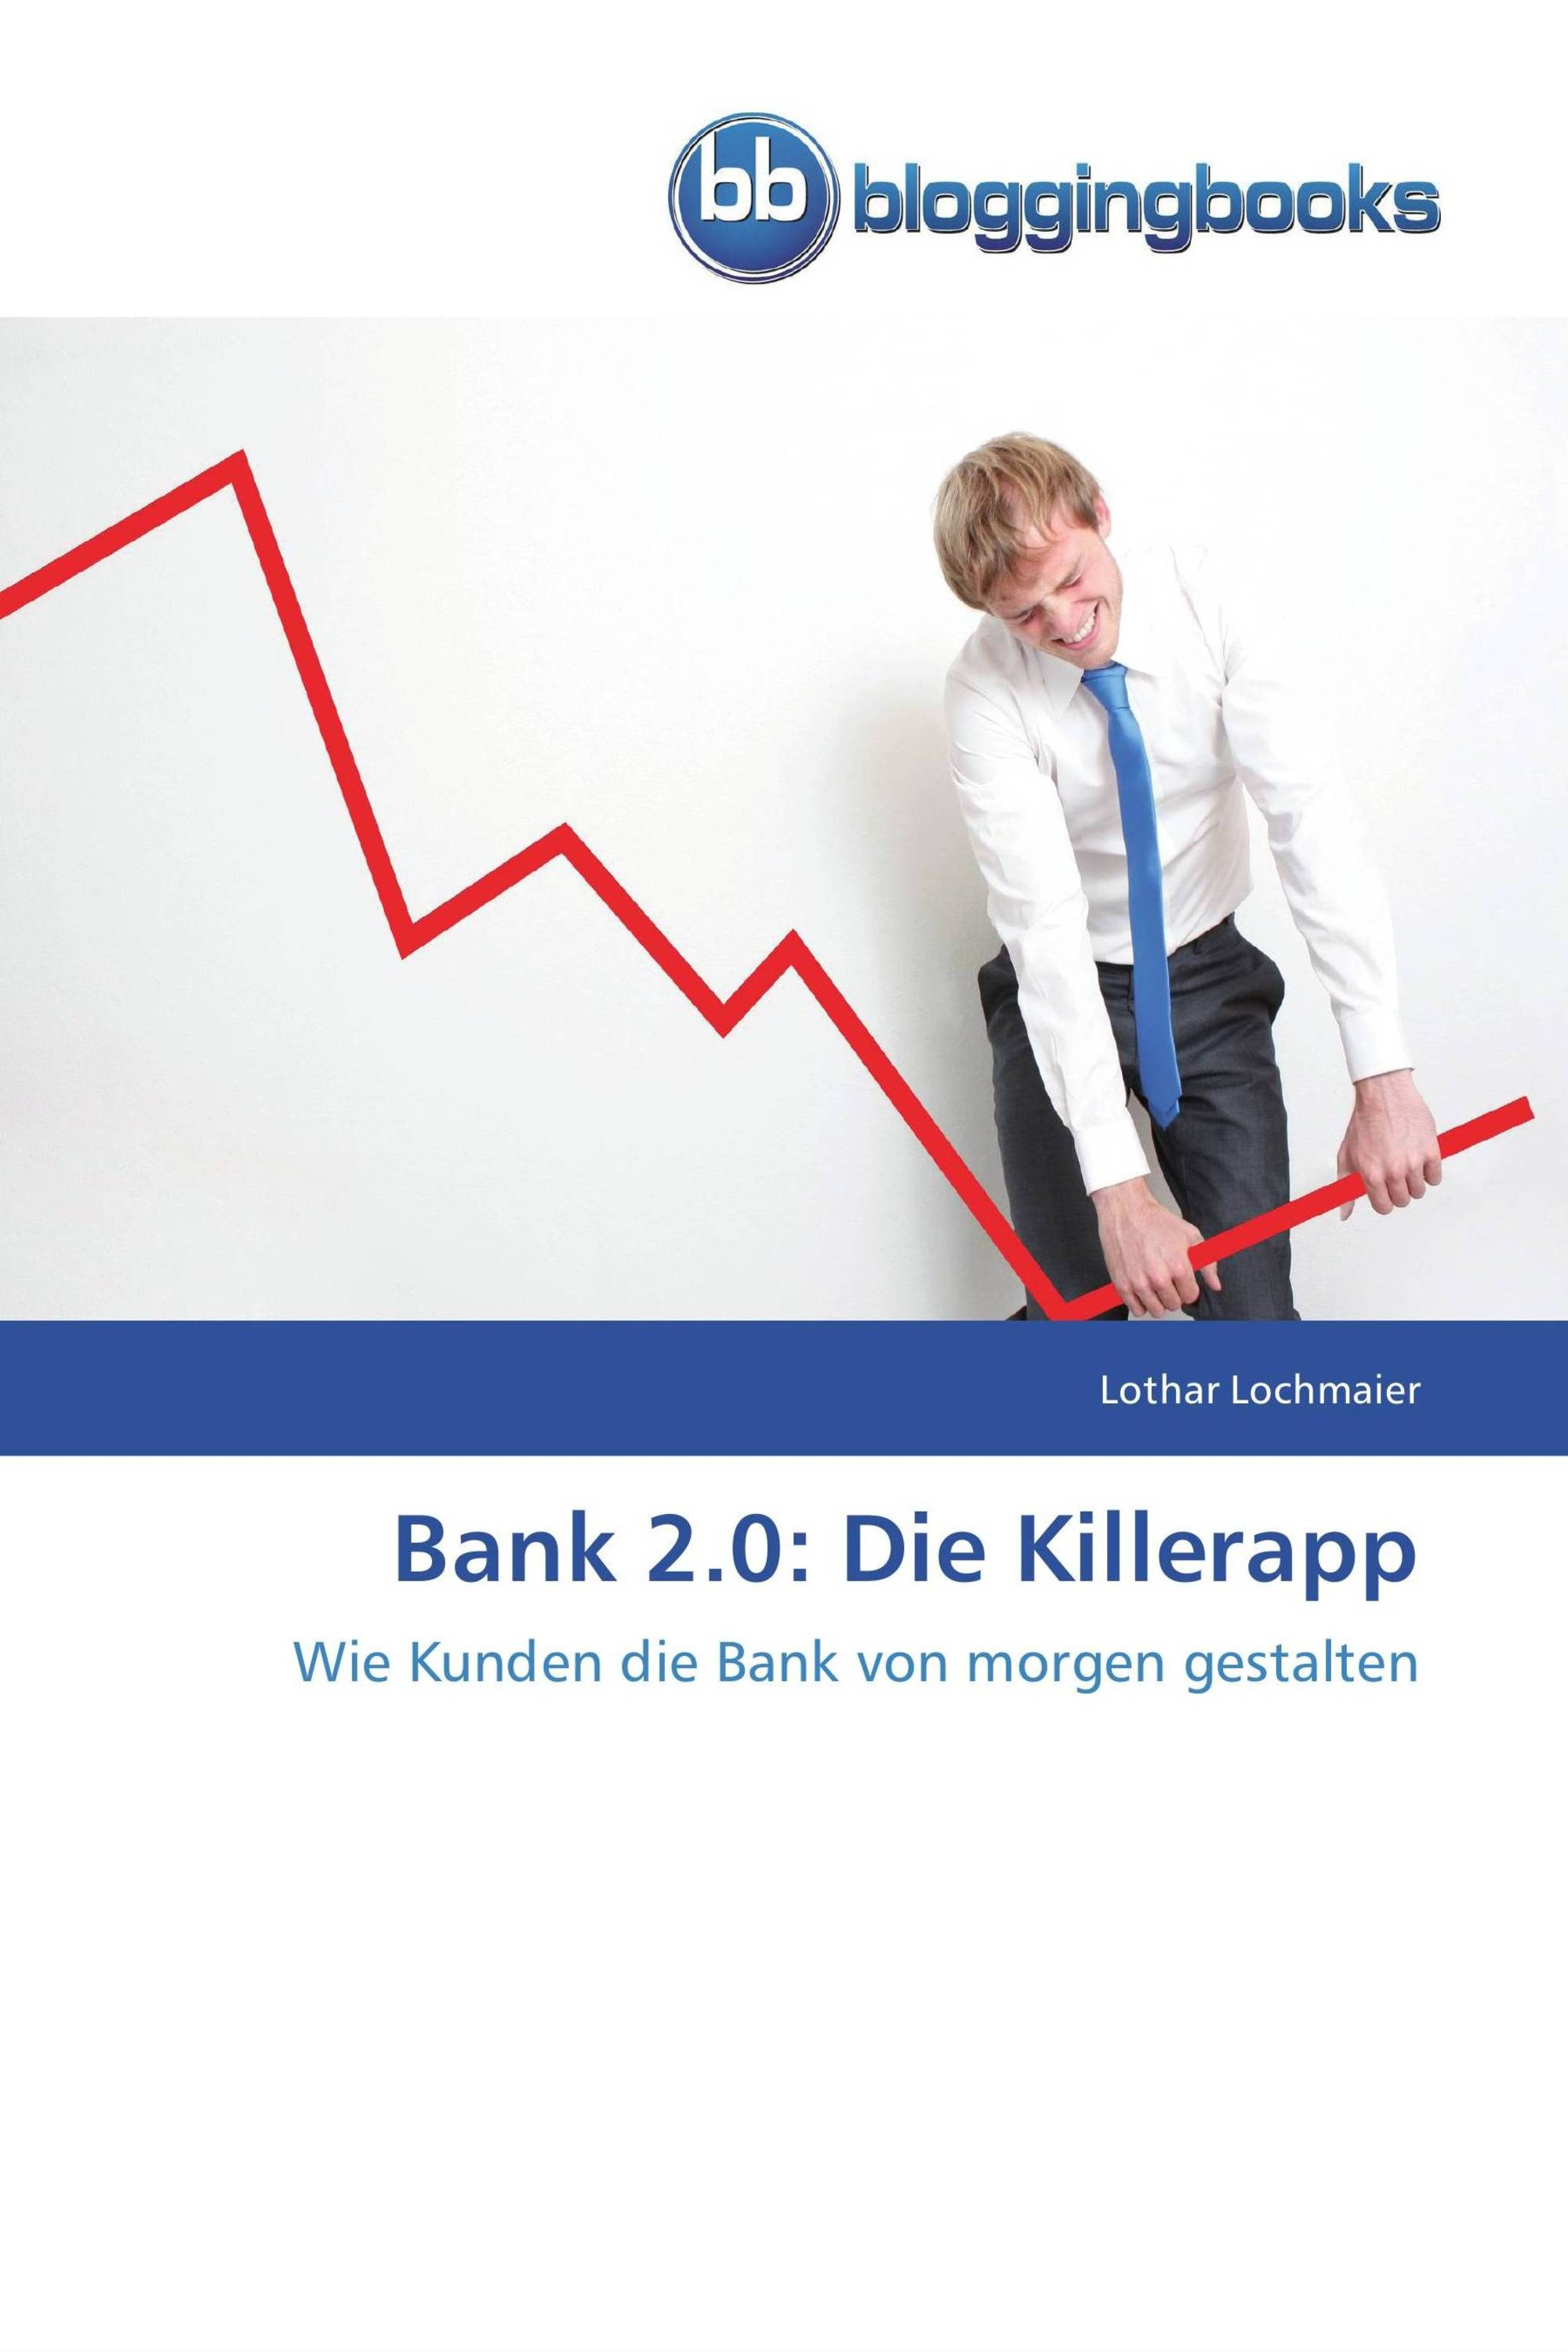 Bank 2.0: Die Killerapp